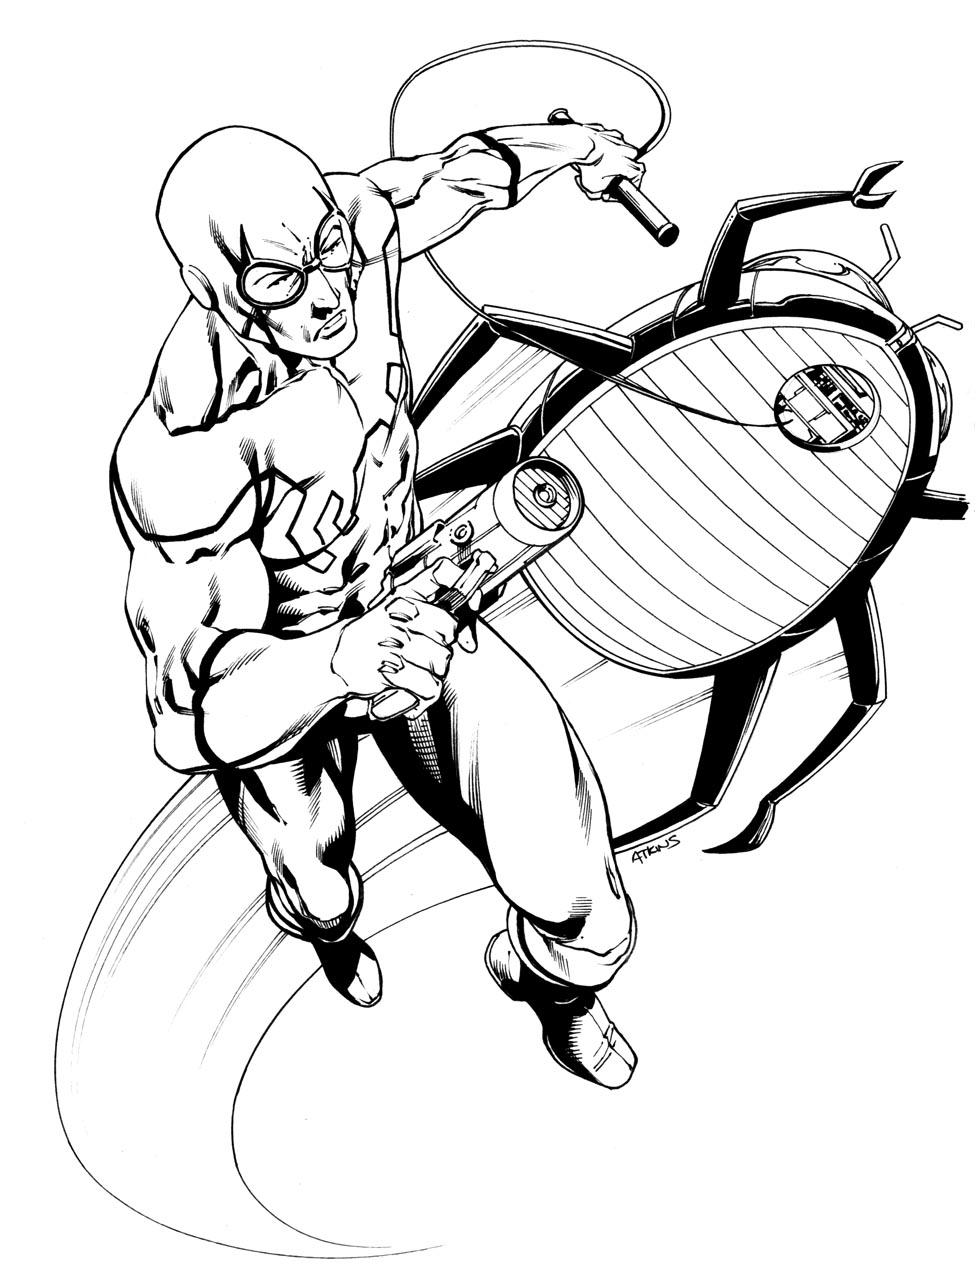 Robert atkins art jla blue beetle for Blue beetle coloring pages